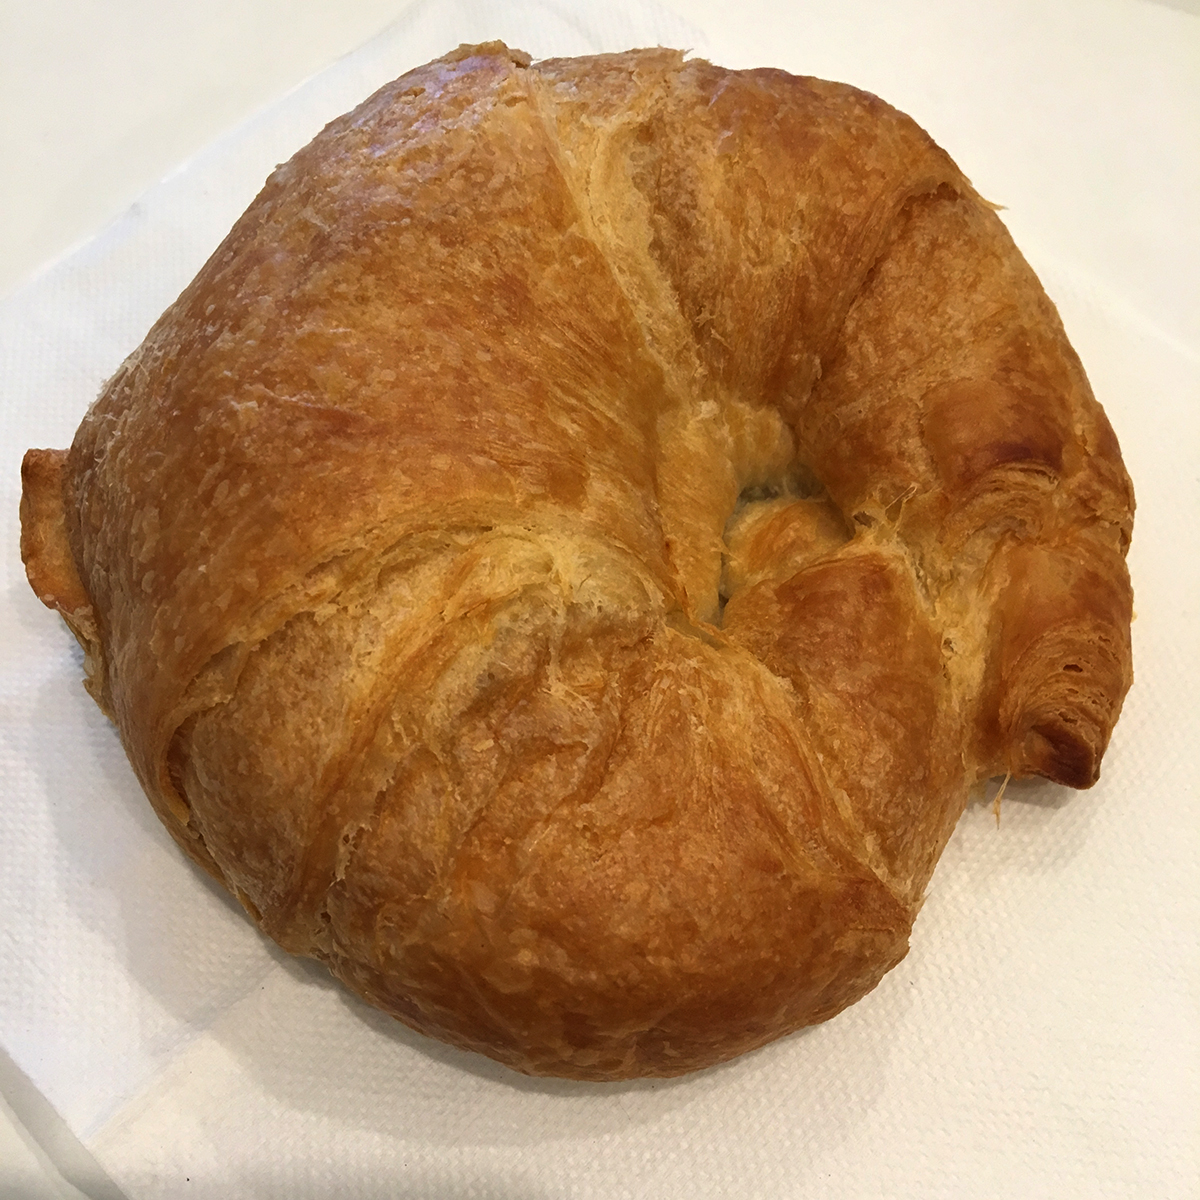 Dilworth Coffee at Plantation Market has a well-stocked pastry case, complete with flaky, buttery croissants. - Facebook3016 Weddington Rd., Ste 600M-F 6:30 AM - 7 PMSa 8 - 7 PM Su 9 - 3 PM